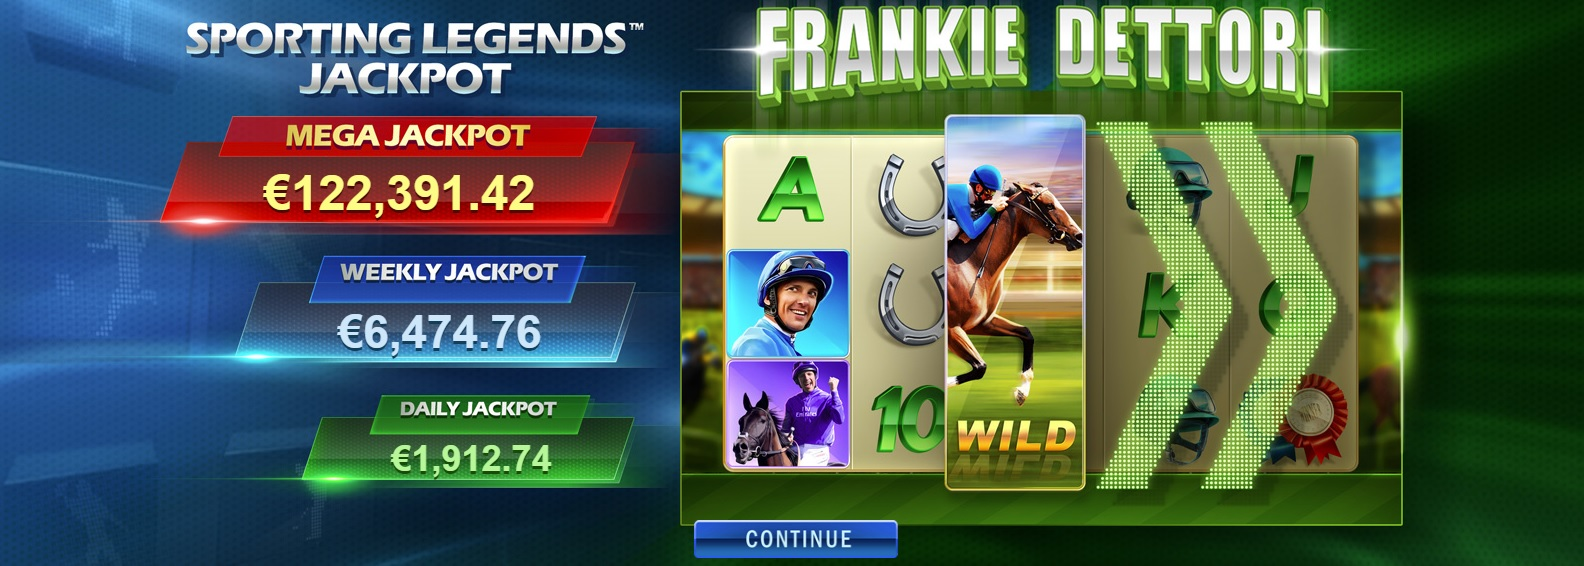 frankie dettori sporting legends jackpot